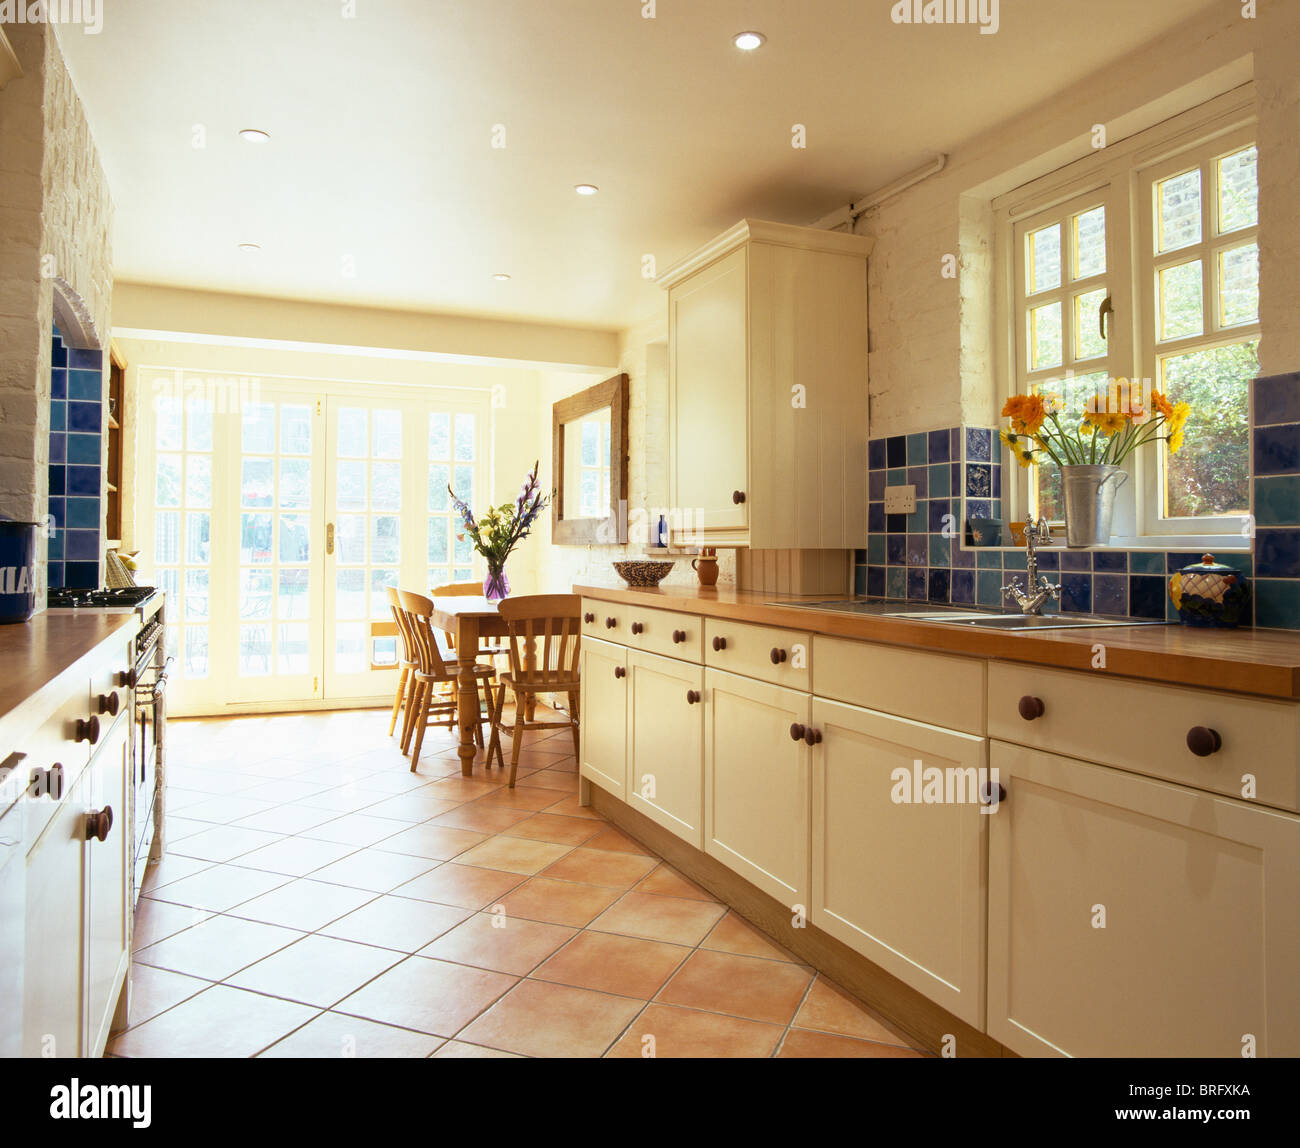 Terracotta tiled floor in open plan kitchen dining room extension with cream fitted units